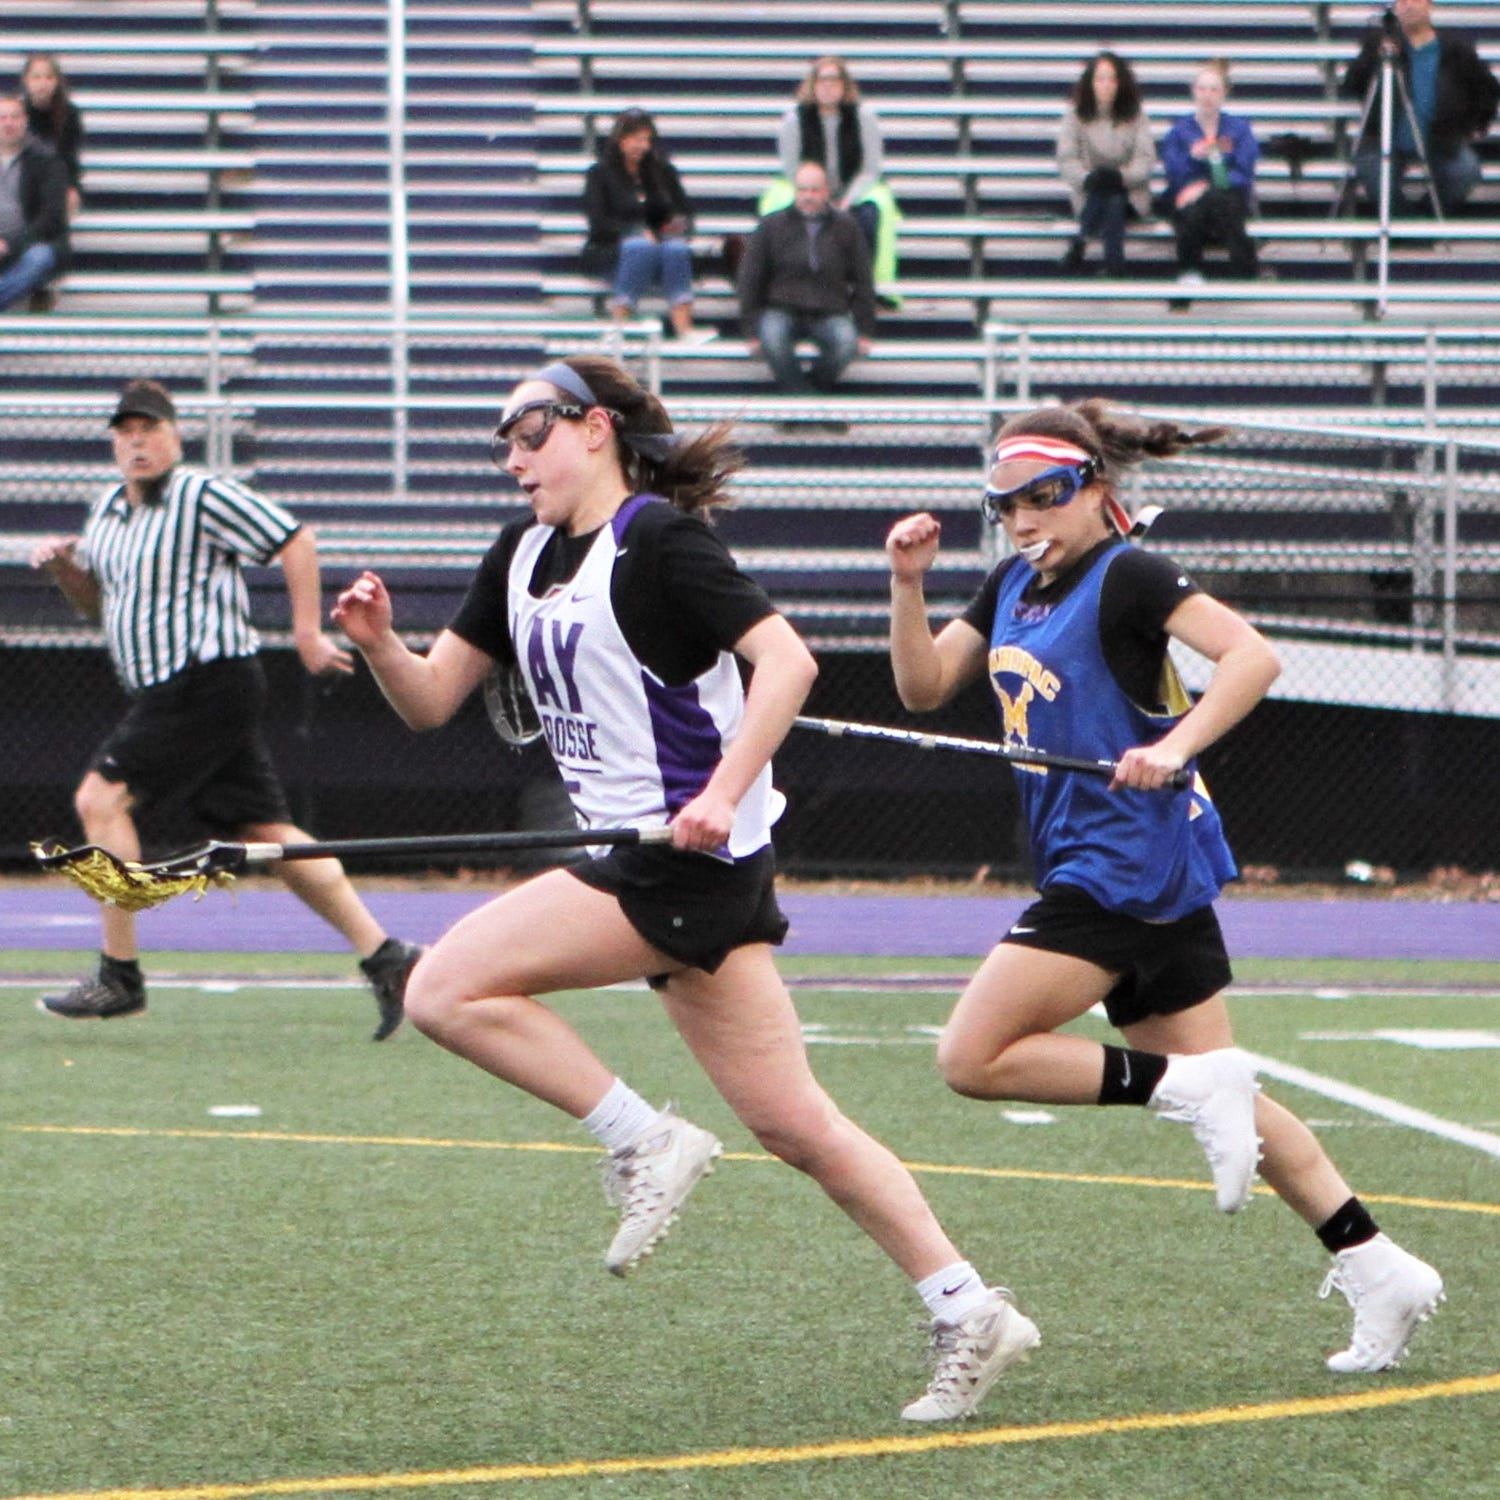 Girls lacrosse preview 2019: Elite 11 players to watch